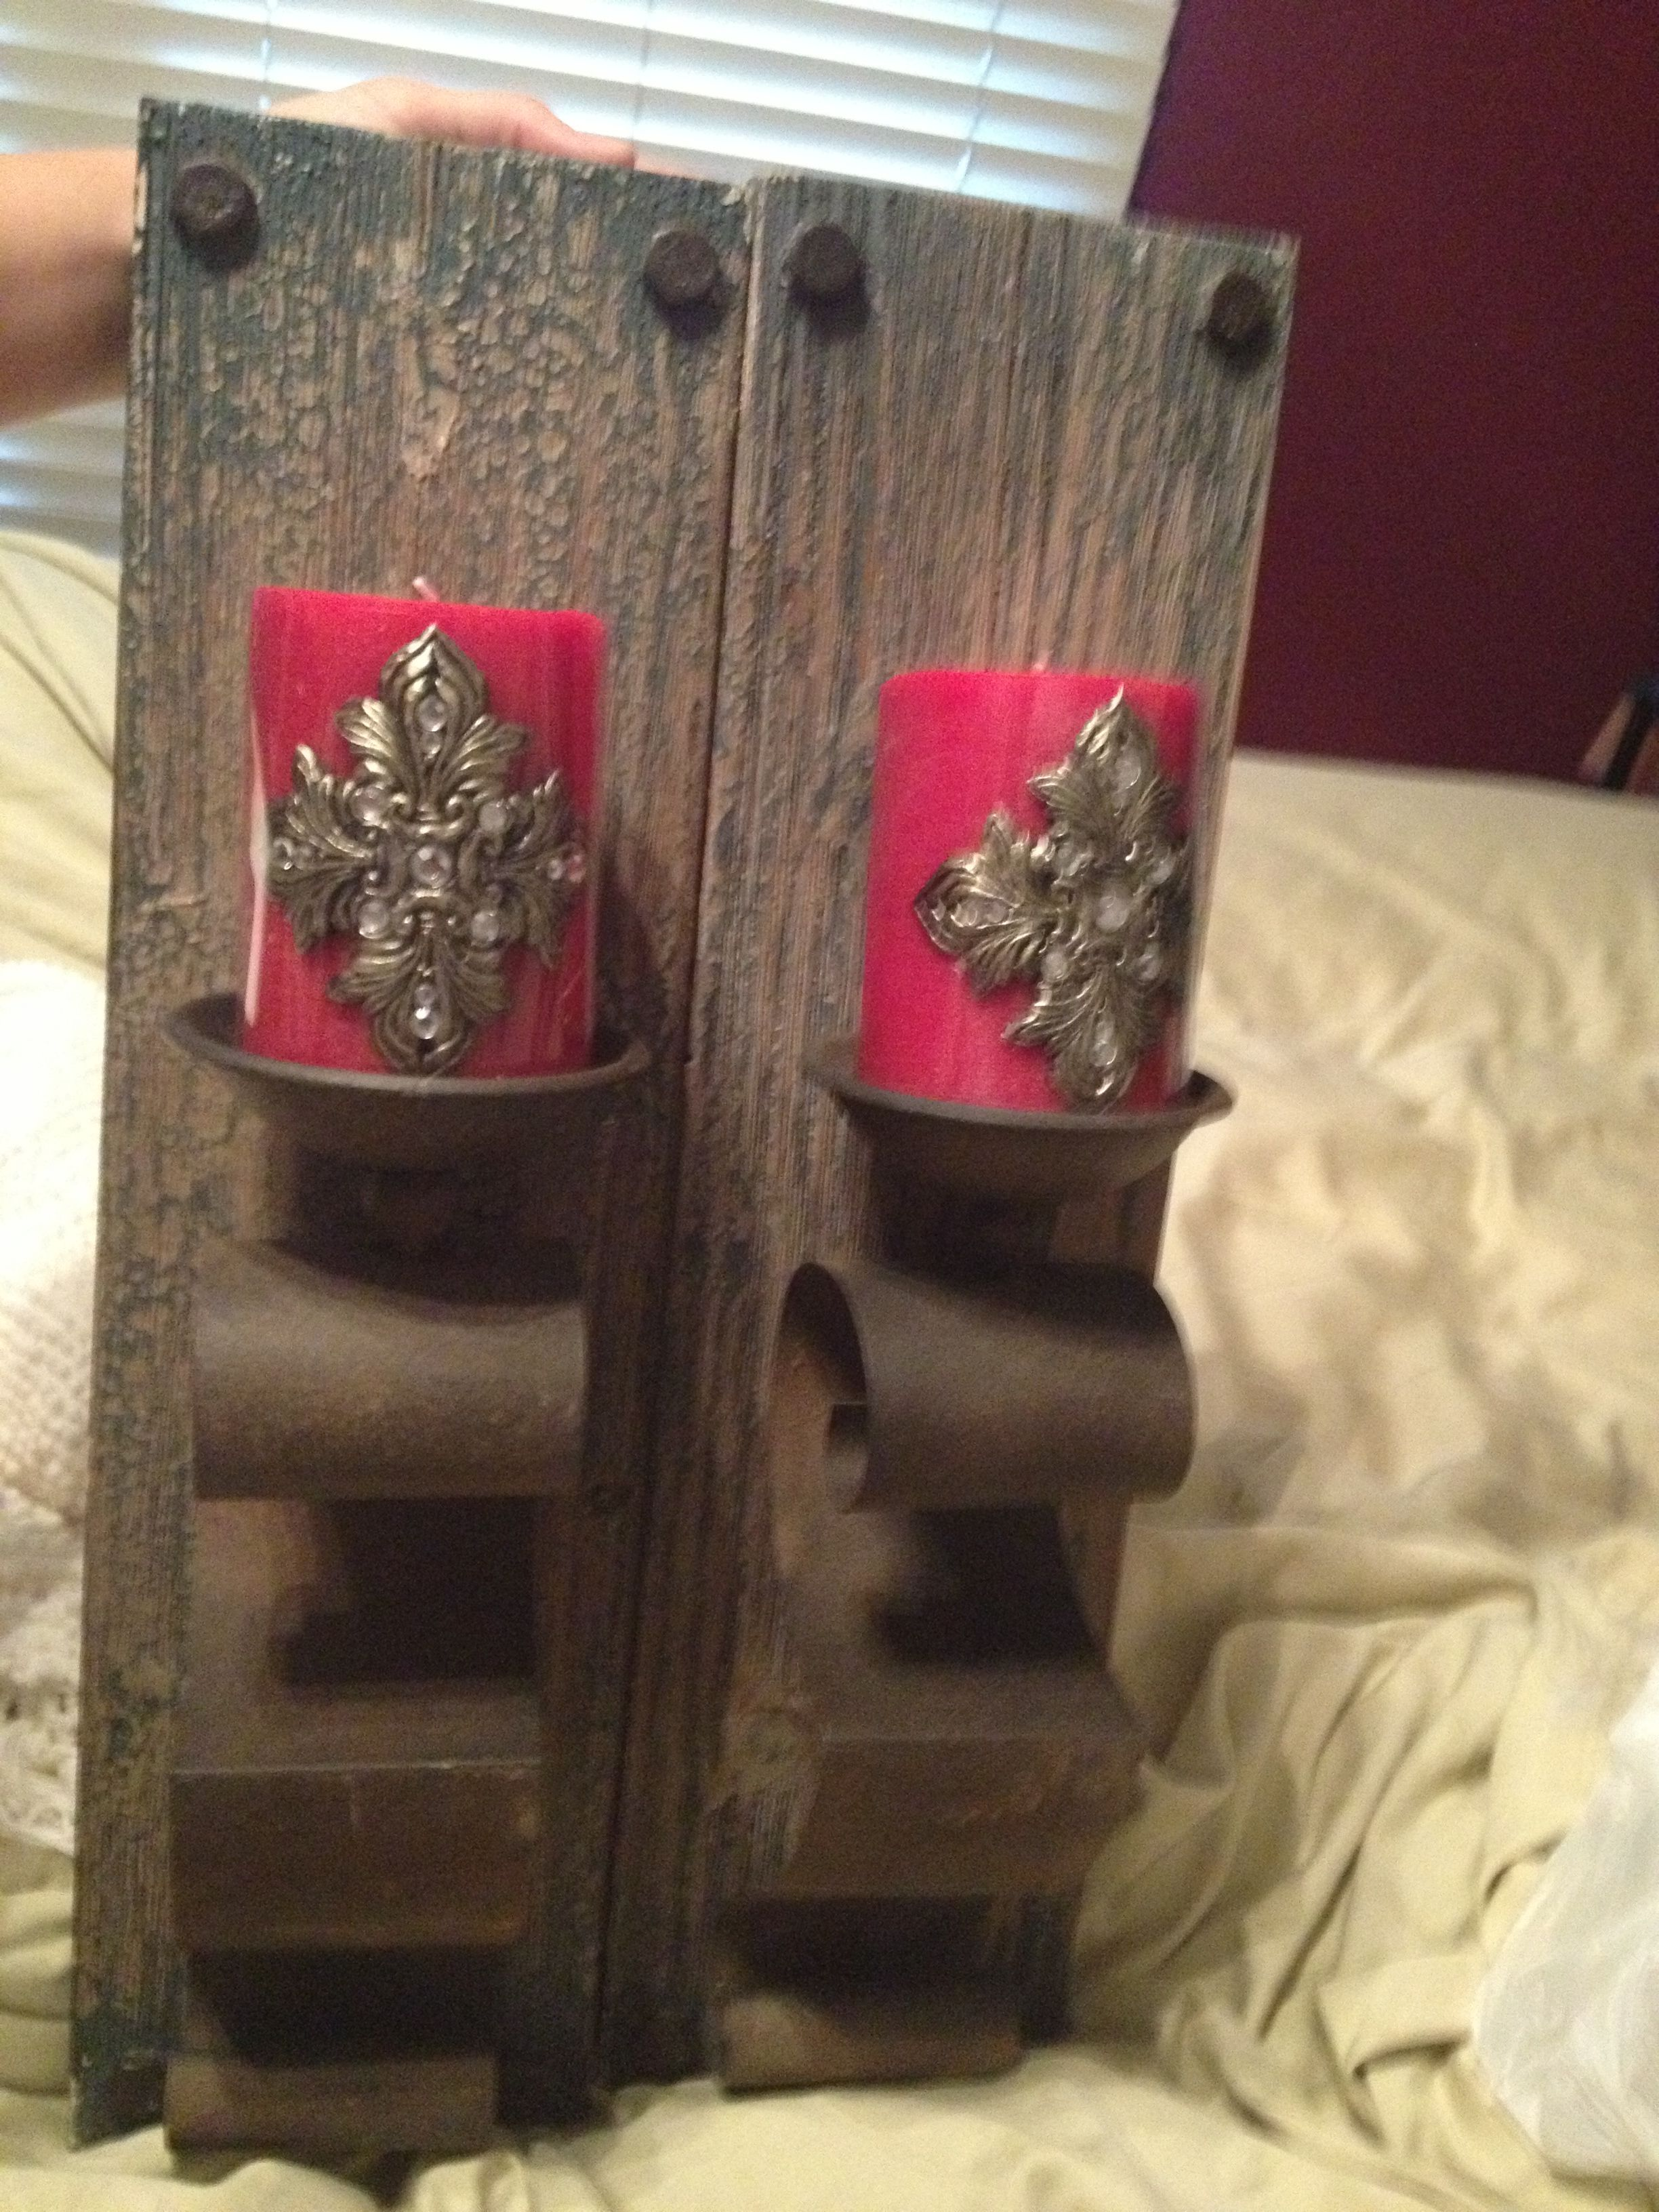 Sconces and candles from hobby lobby decor pinterest hobby